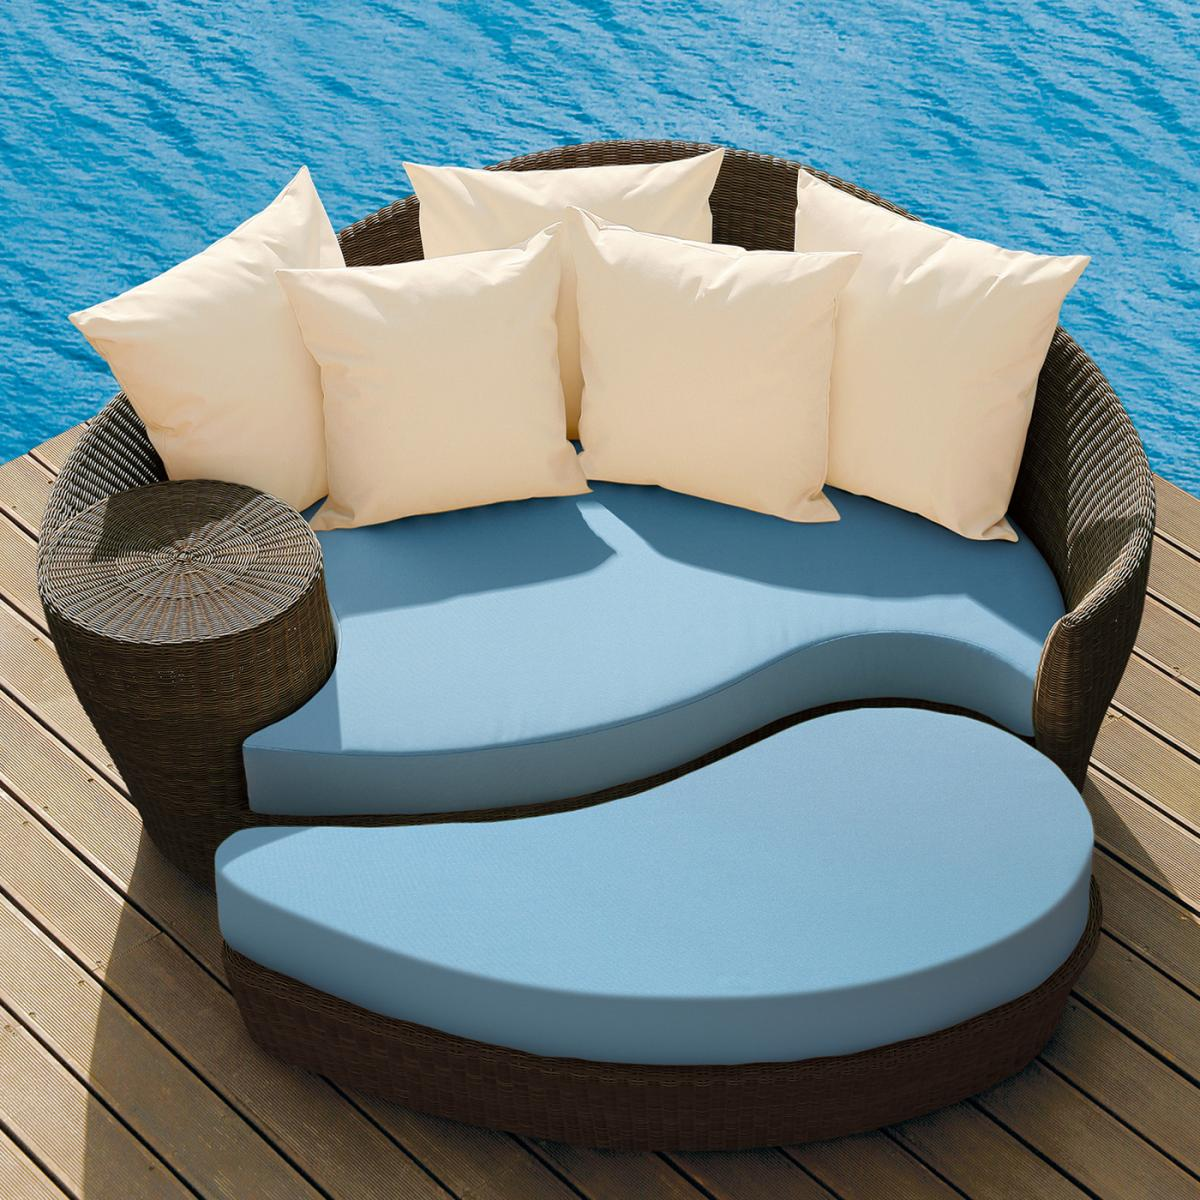 barlow tyrie dune straw daybed set - clifton nurseries barlow tyrie dune daybed java sky blue cushions